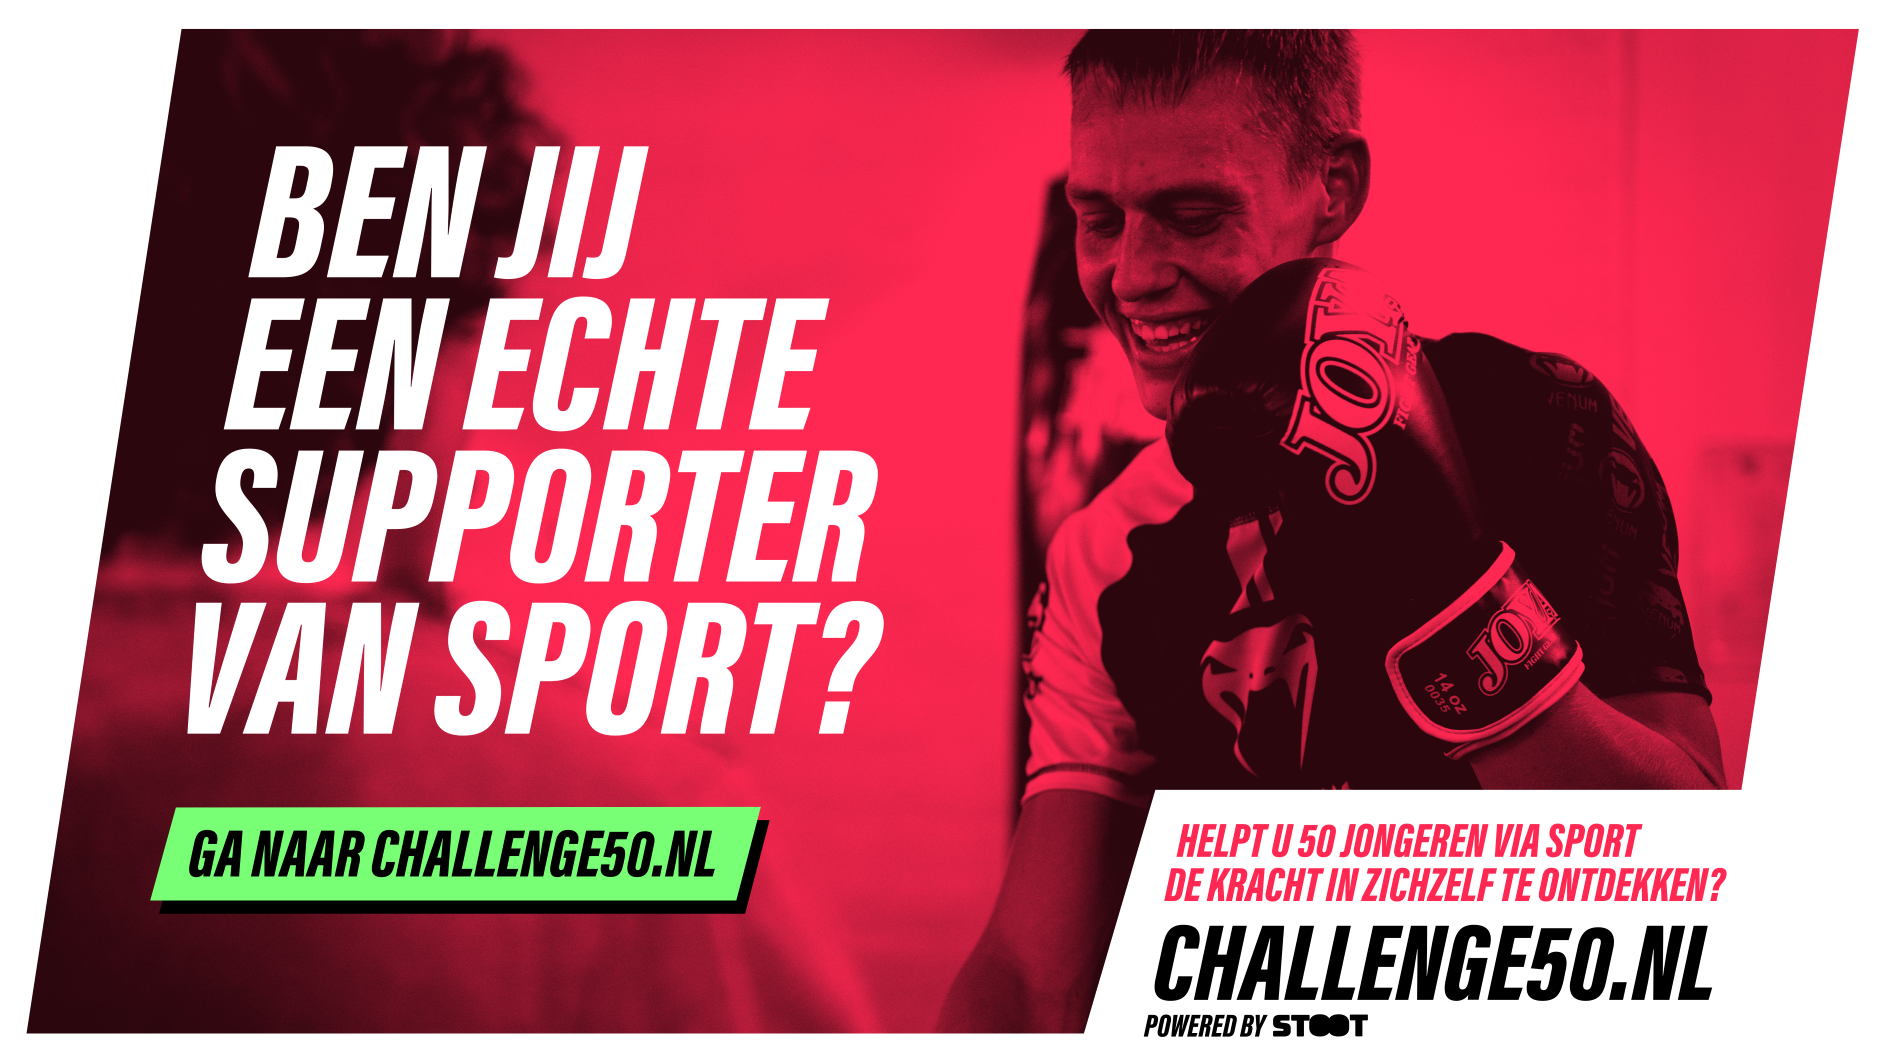 <strong>www.challenge50.nl is ON AIR!!</strong>